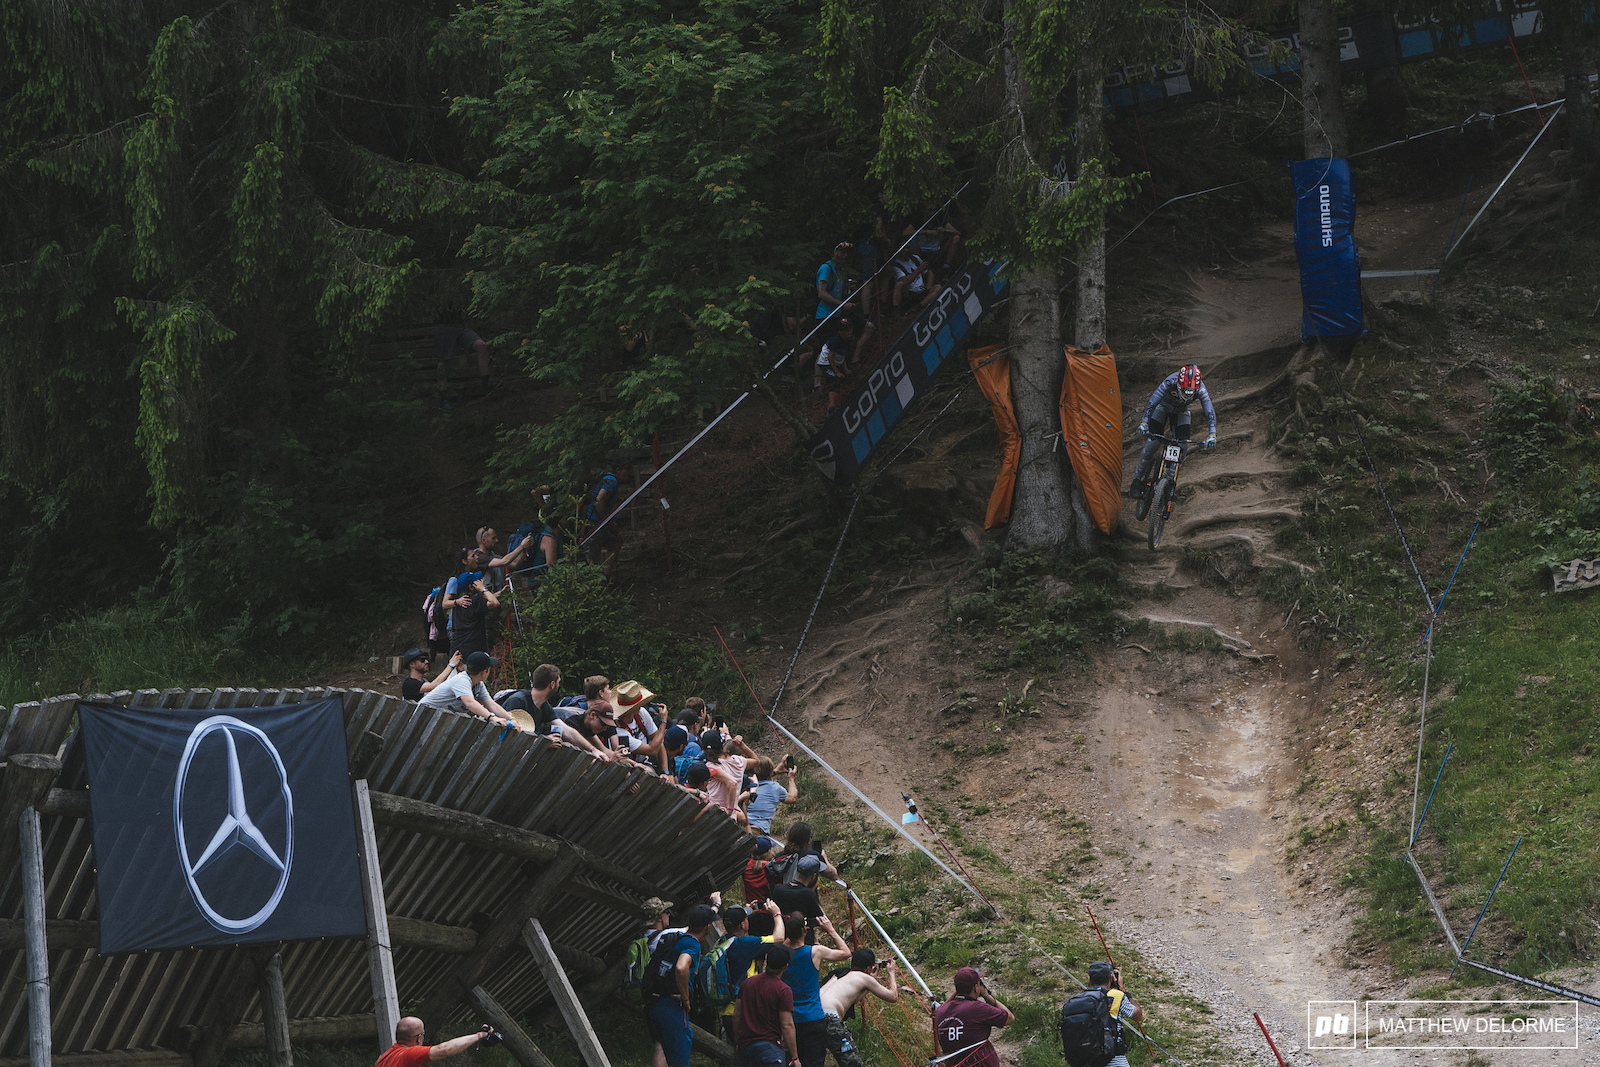 Greg Minnaar almost had it. At 38 years old his riding is as impressive as ever. Second place today.